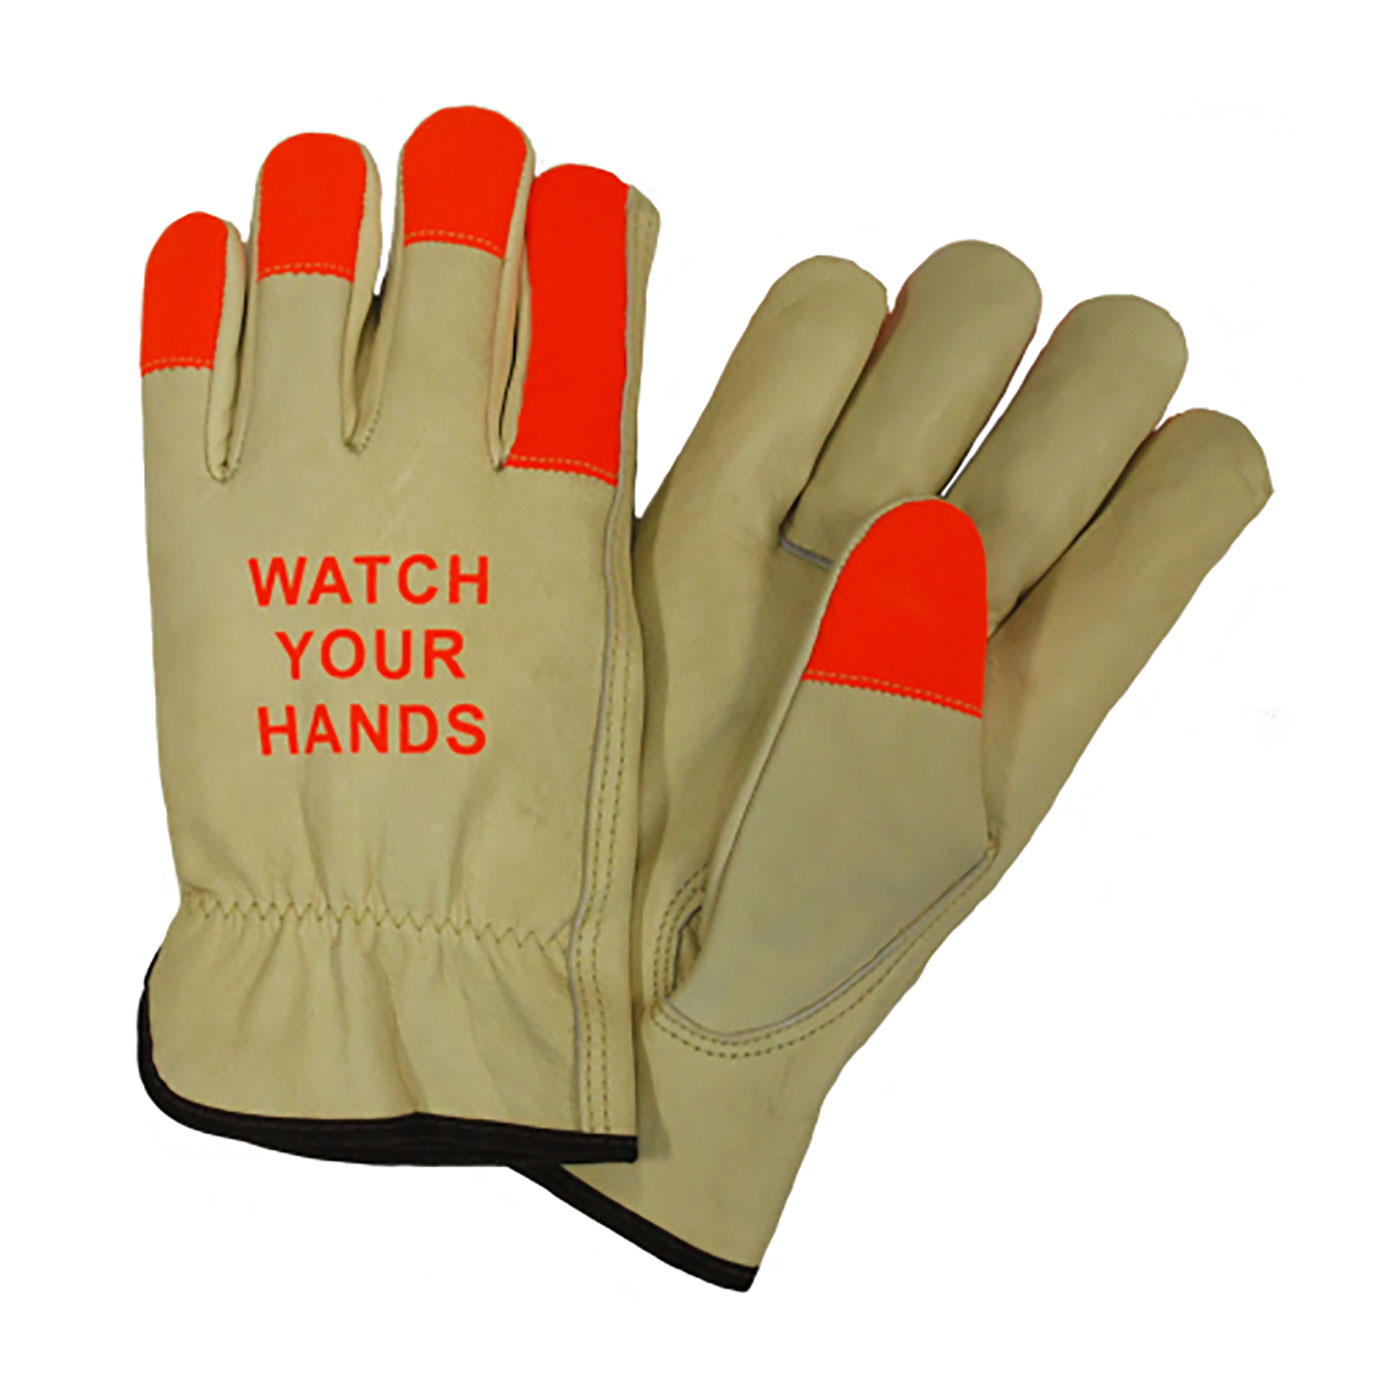 994KOTP PIP® Posi-Therm® Regular Grade Top Grain Pigskin Leather Drivers Glove with Posi-Therm® Linging and Hi-Vis Fingertips - Keystone Thumb